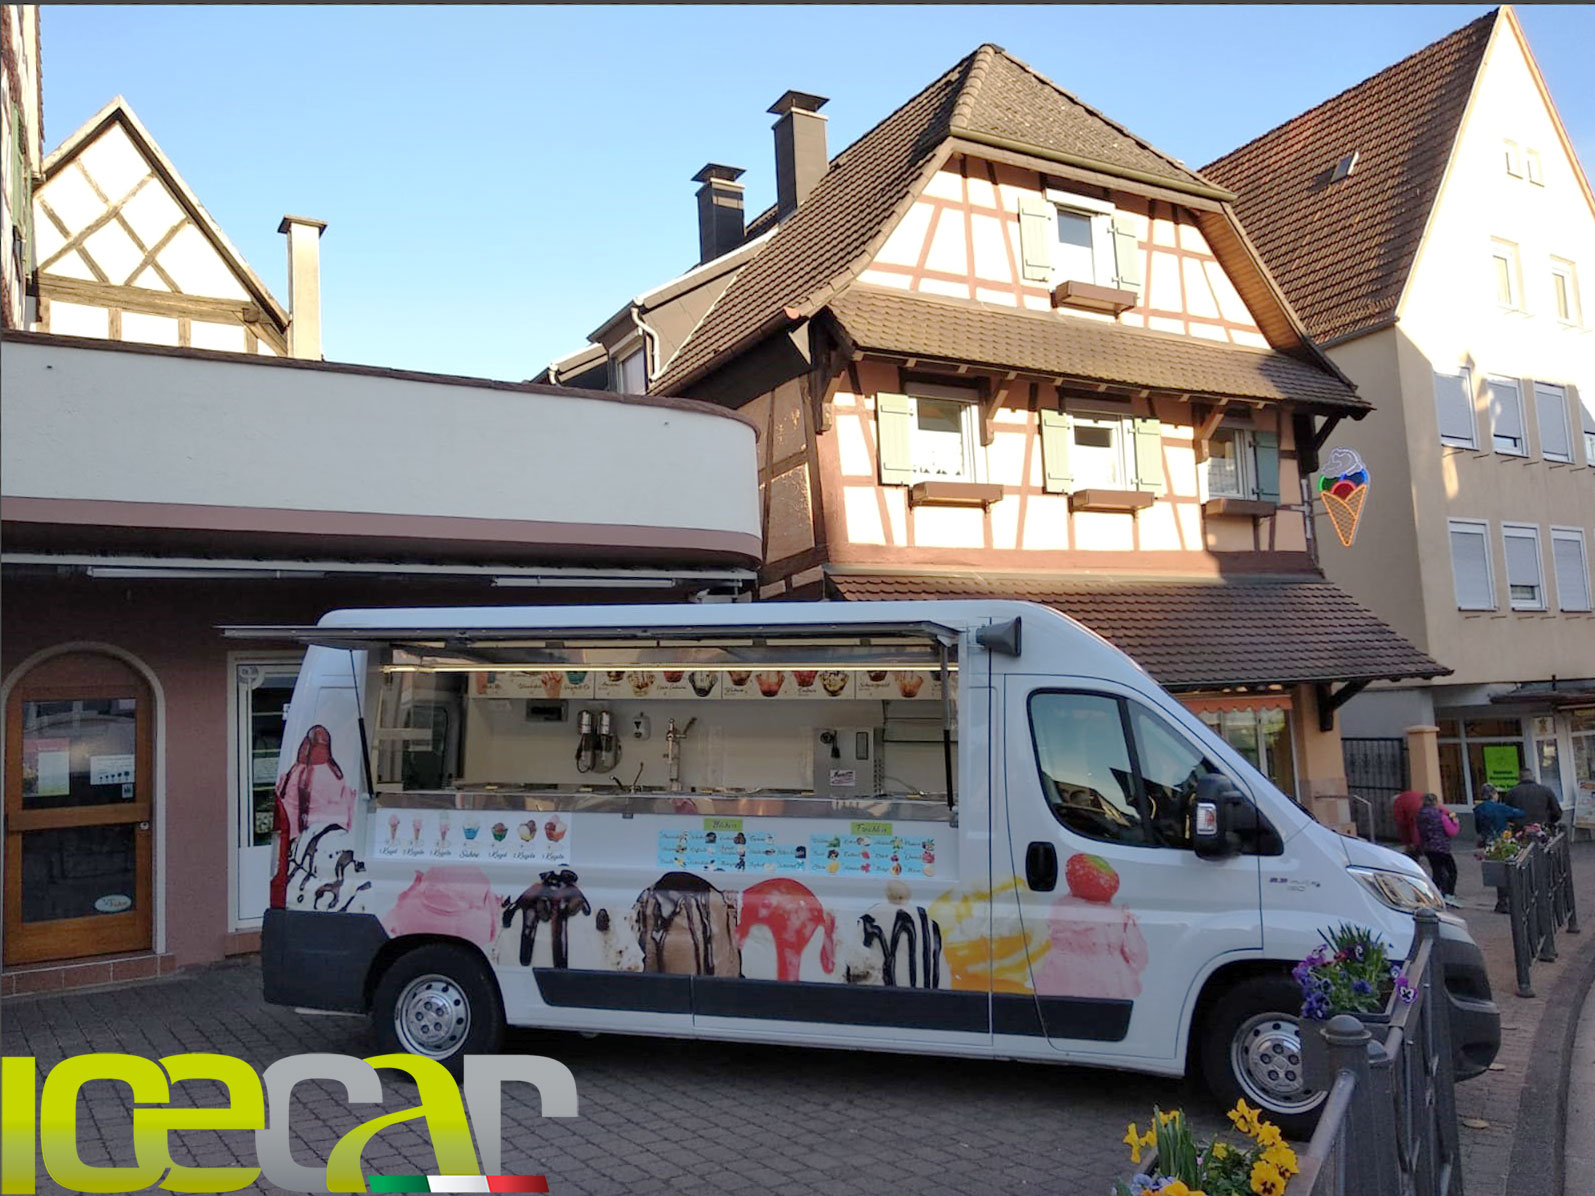 Gelateria ambulante in Germania